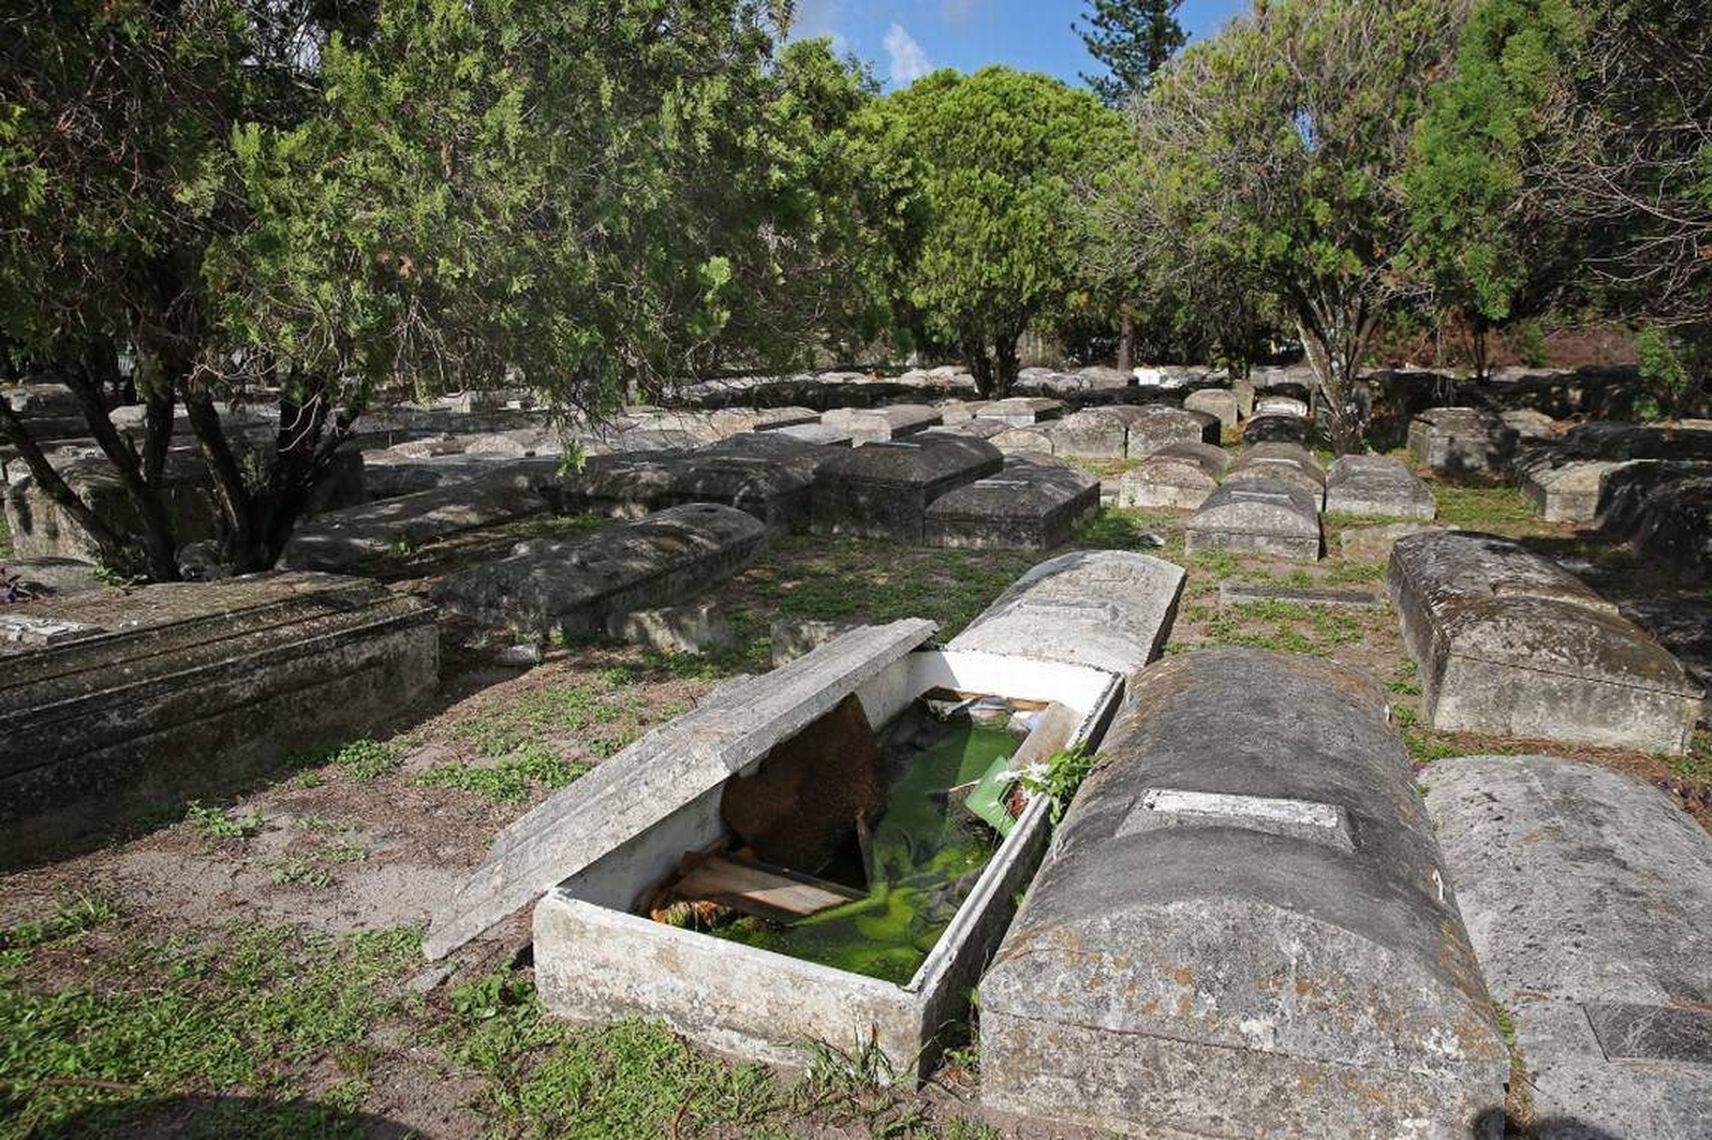 Voodoo, prostitutes and vagrants: Grave robbers vandalize